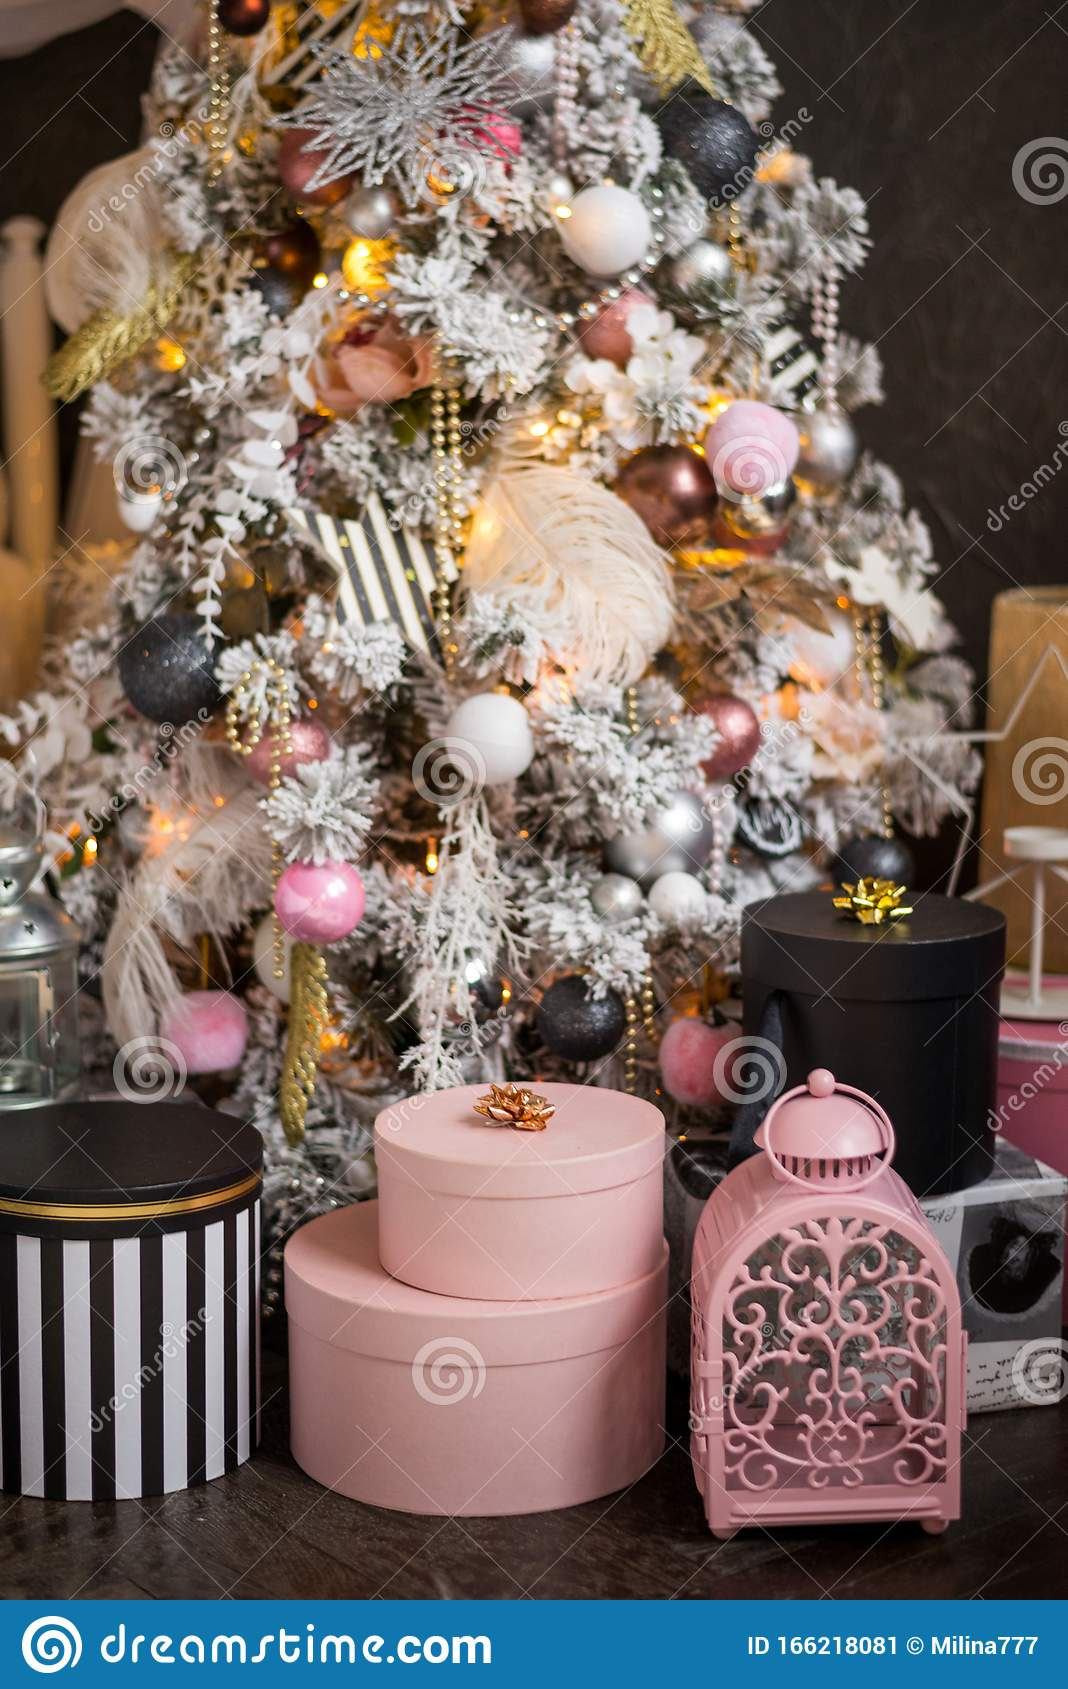 Gifts Boxes Round Pink White Striped Under Christmas Tree With Christmas Decorations Stock Image Image Of Greeting Paper 166218081